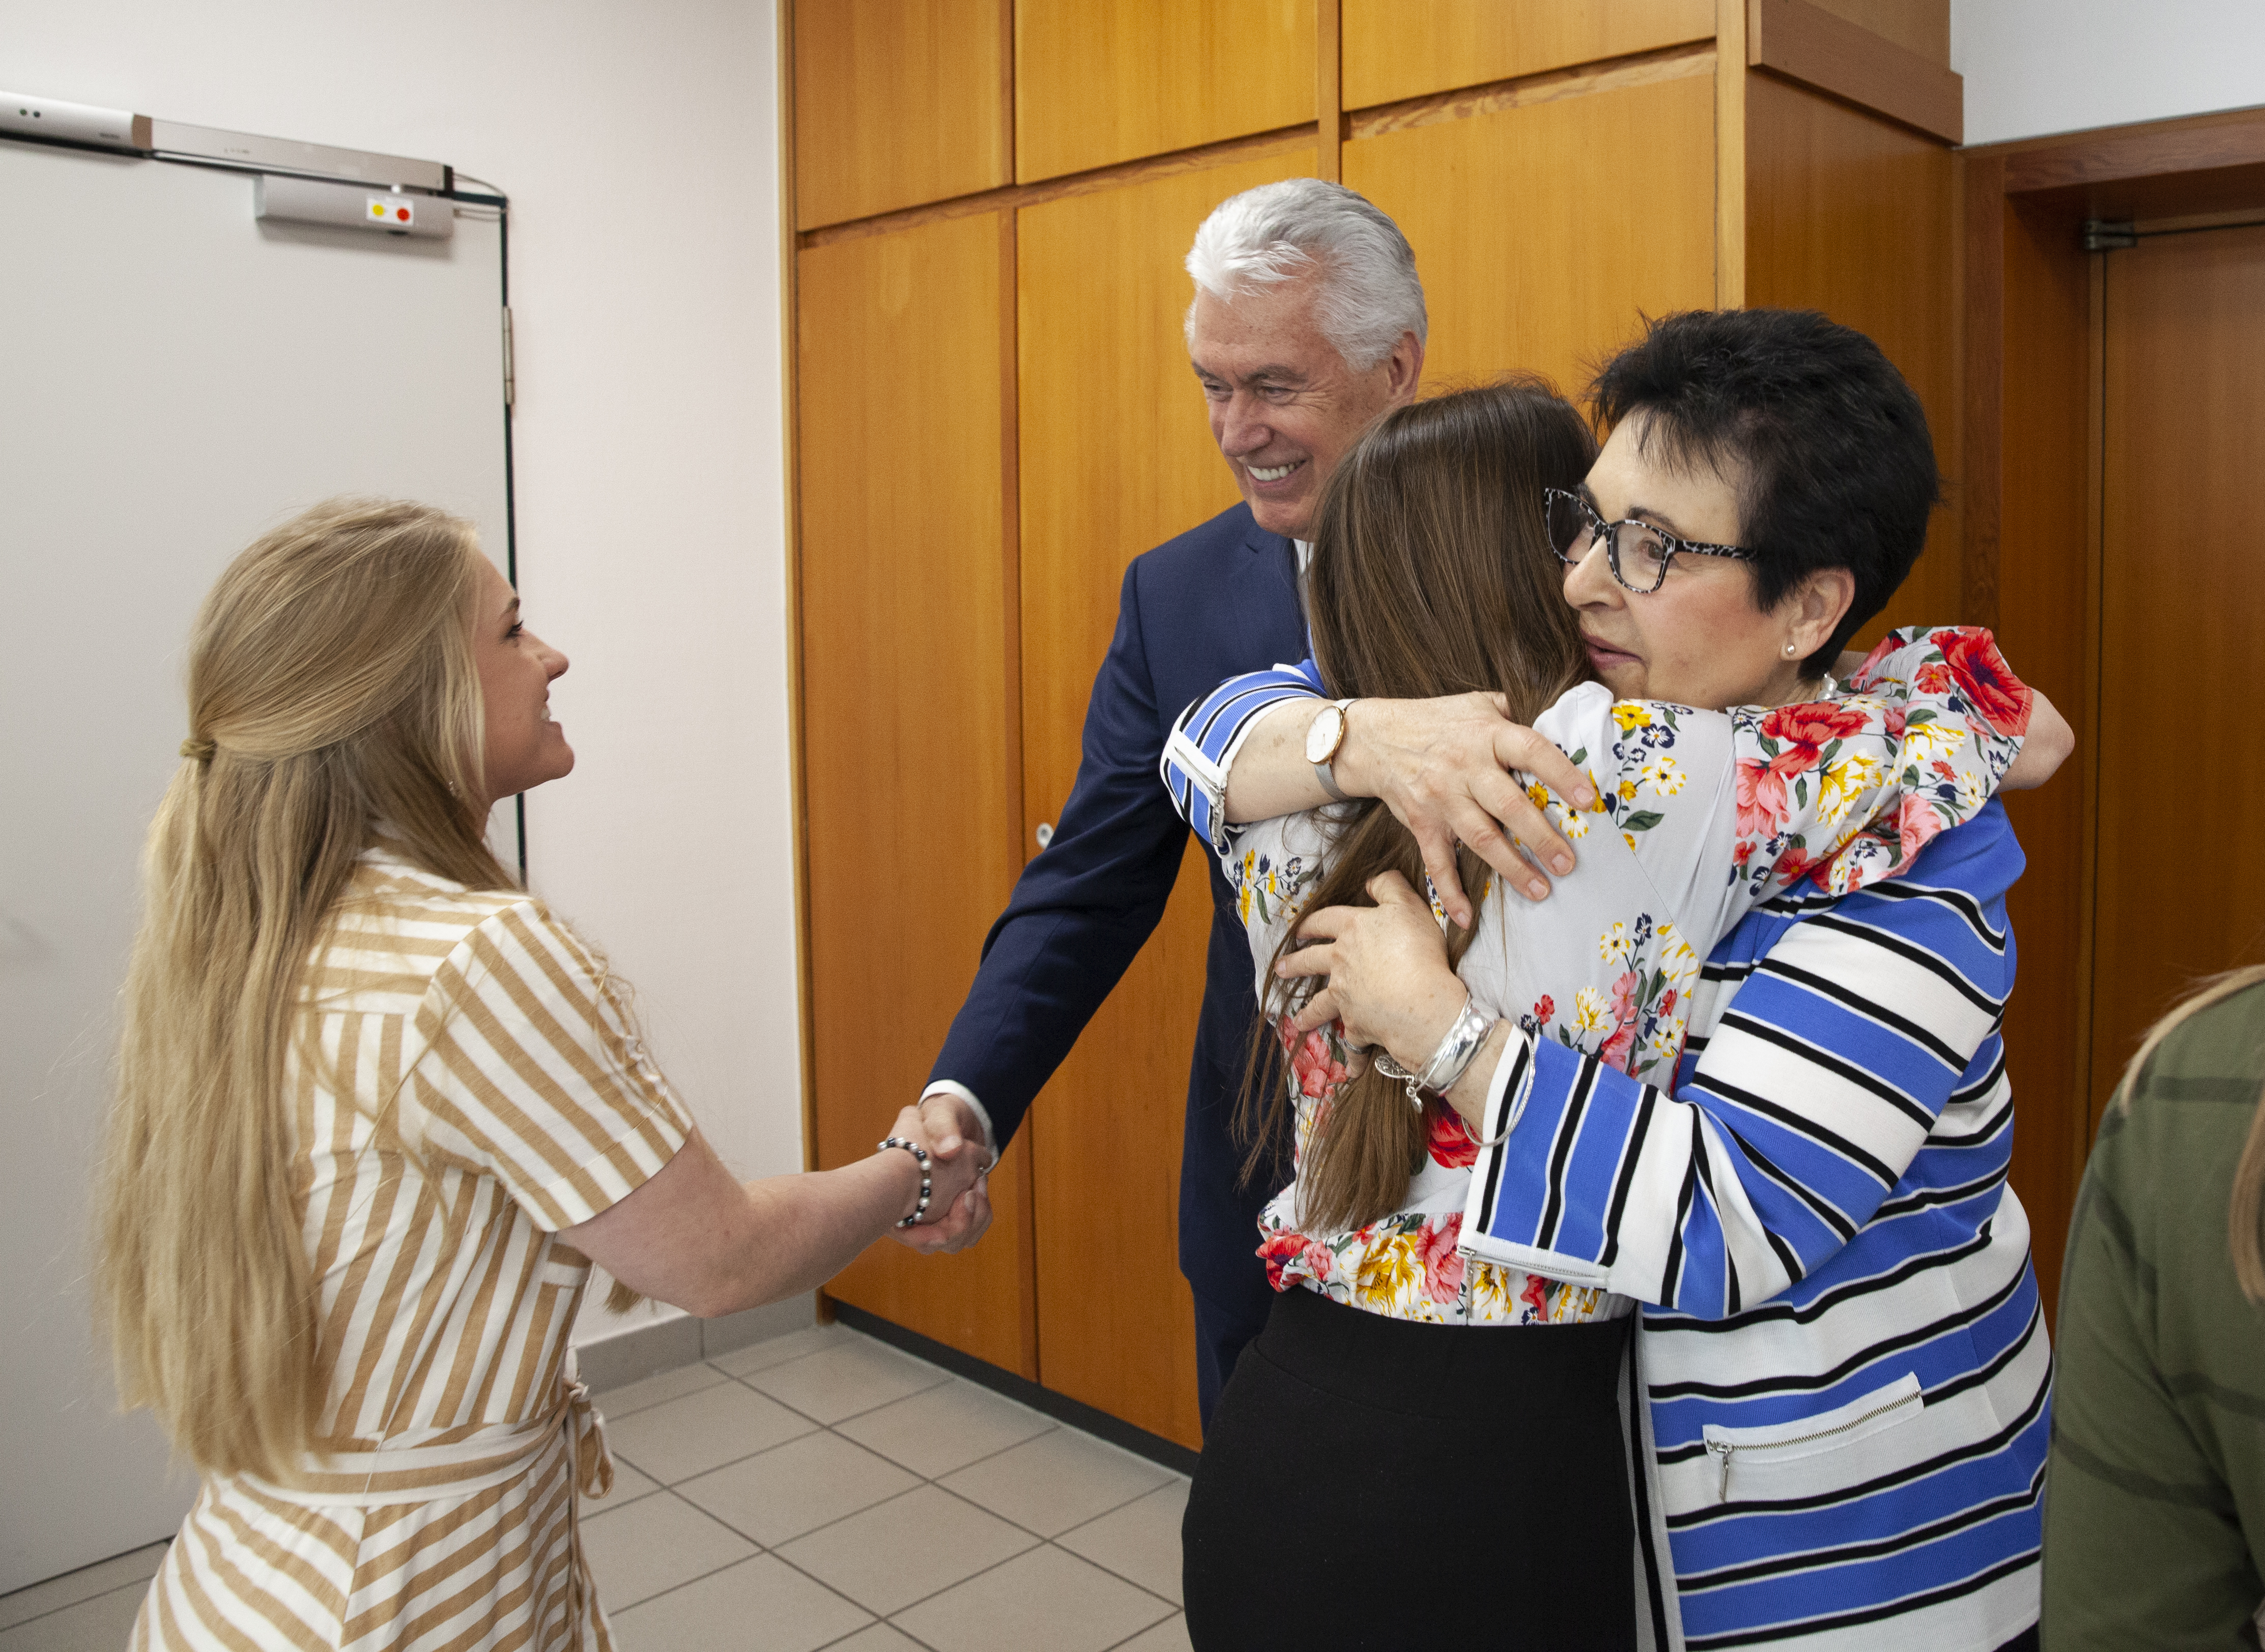 Elder Dieter F. Uchtdorf and Sister Harriet Uchtdorf greet missionaries of the Germany Frankfurt Mission following a mission conference in Frankfurt on April 26, 2019.